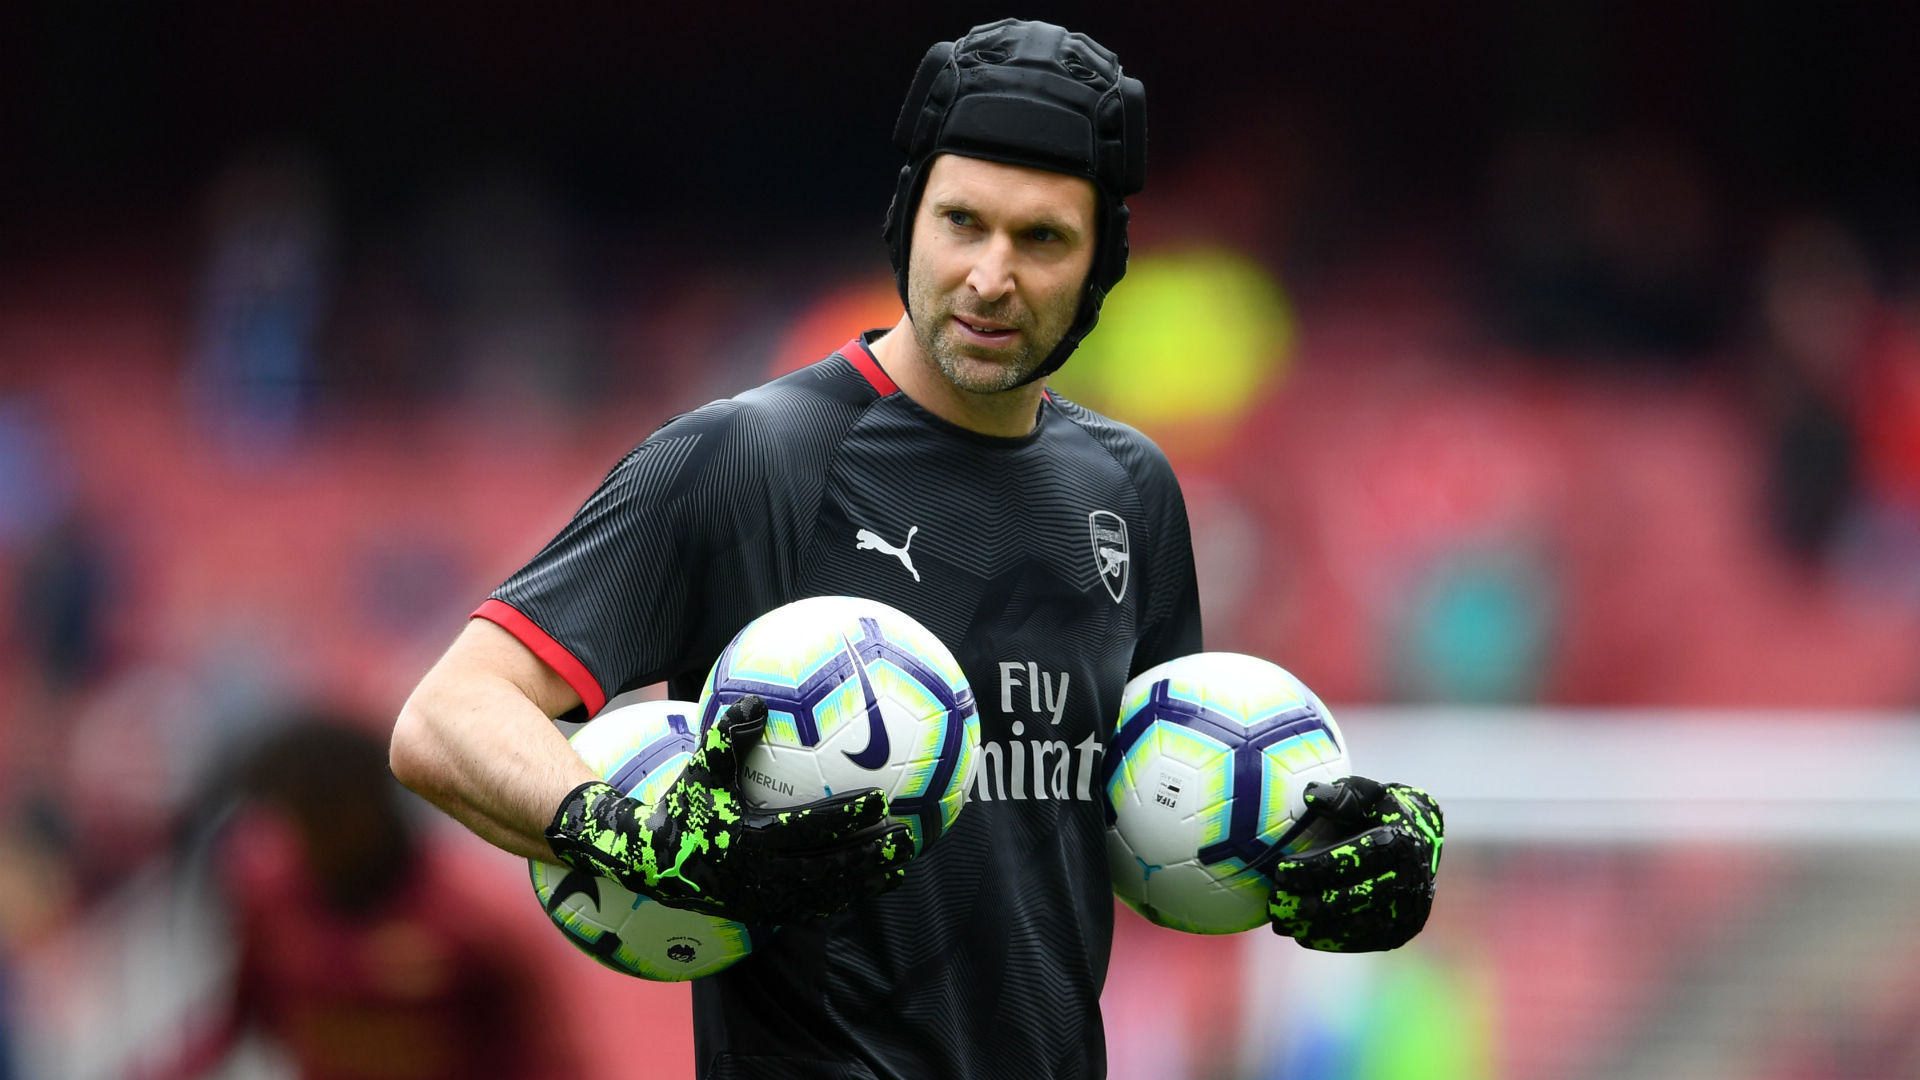 Cech denies he already agreed to Chelsea sporting director role